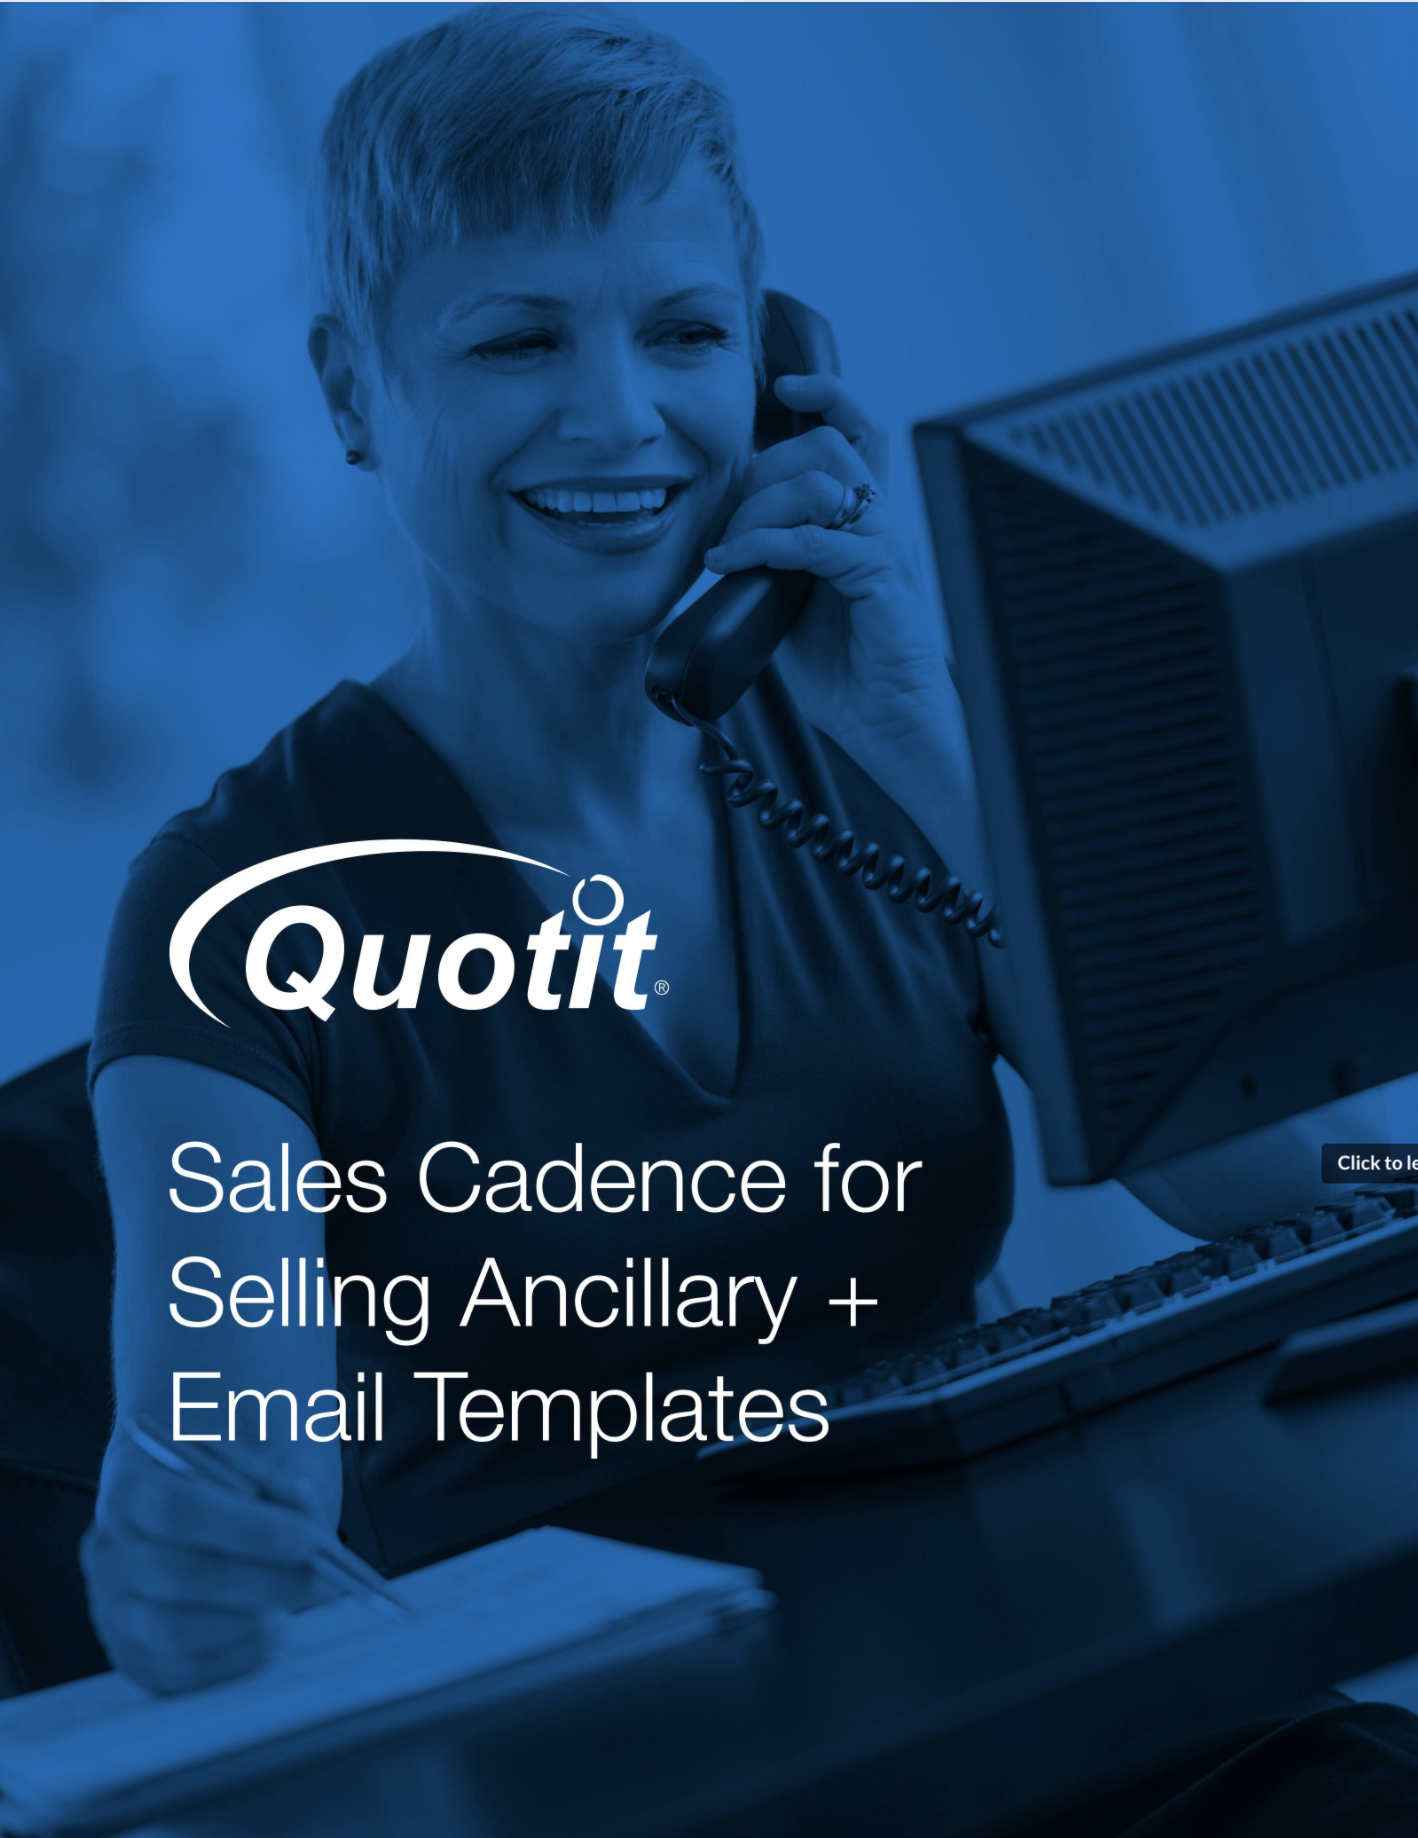 Sales Cadence for Selling Ancillary + Email Templates | Quotit